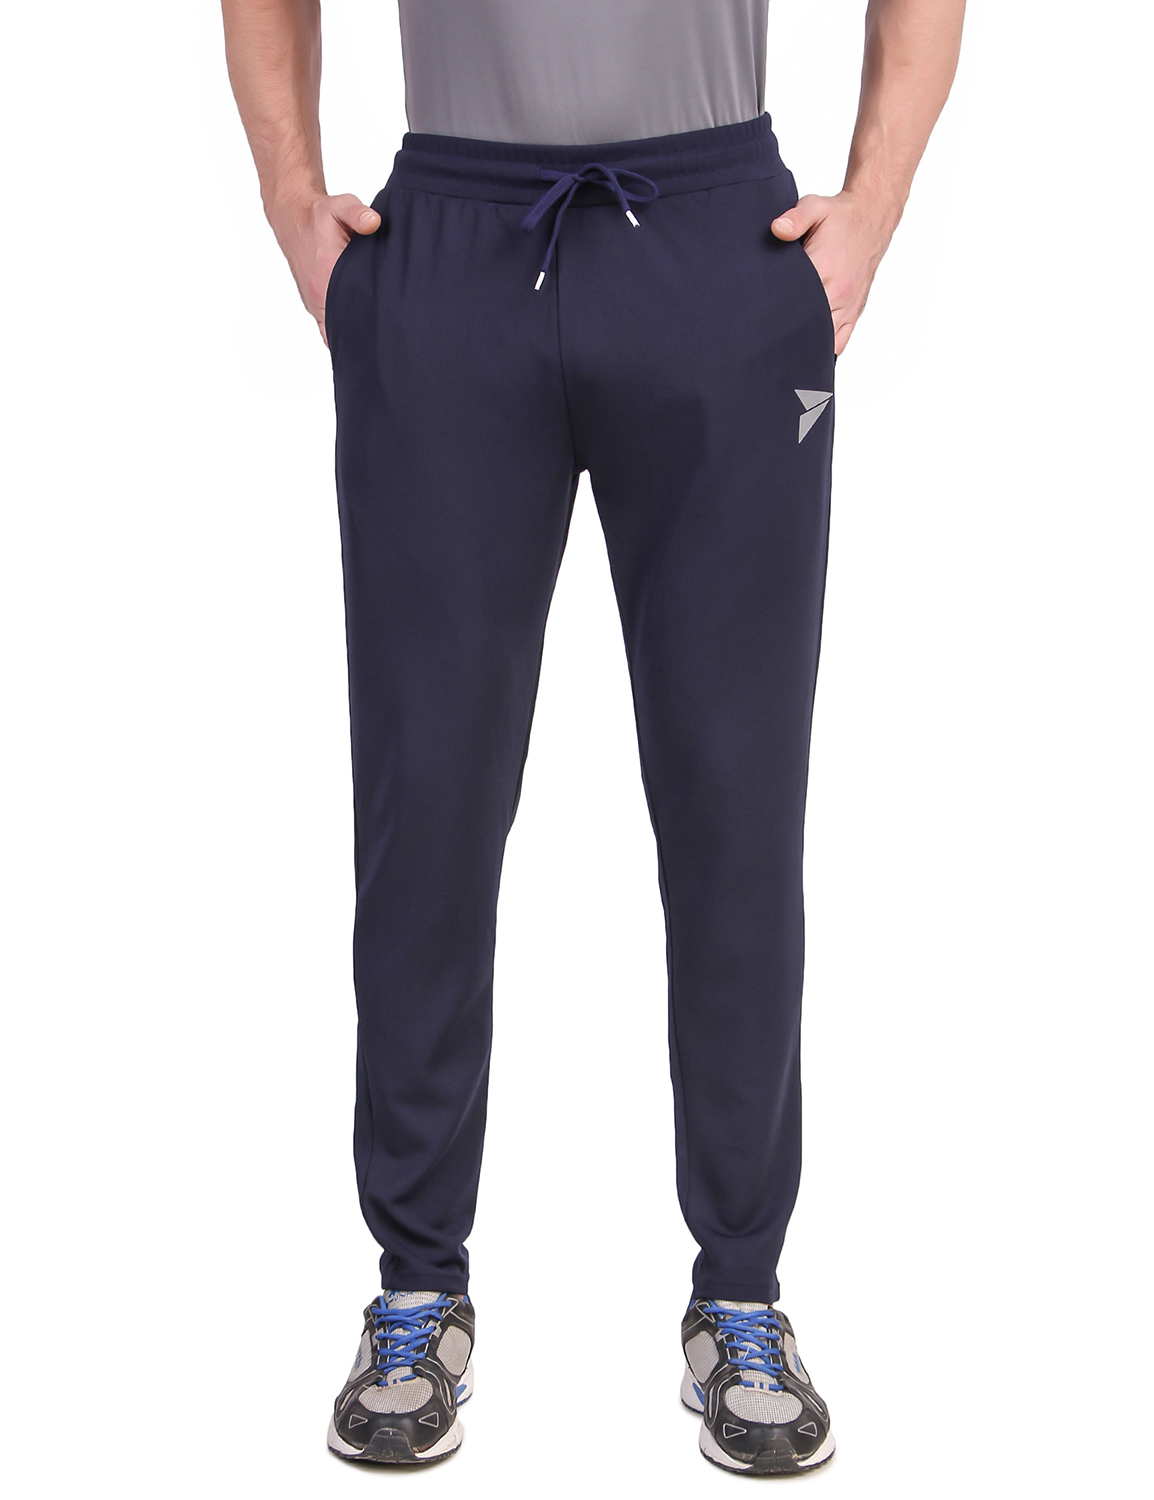 Fitinc   Fitinc Navy Blue Track Pant with Concealed Zipper Pockets